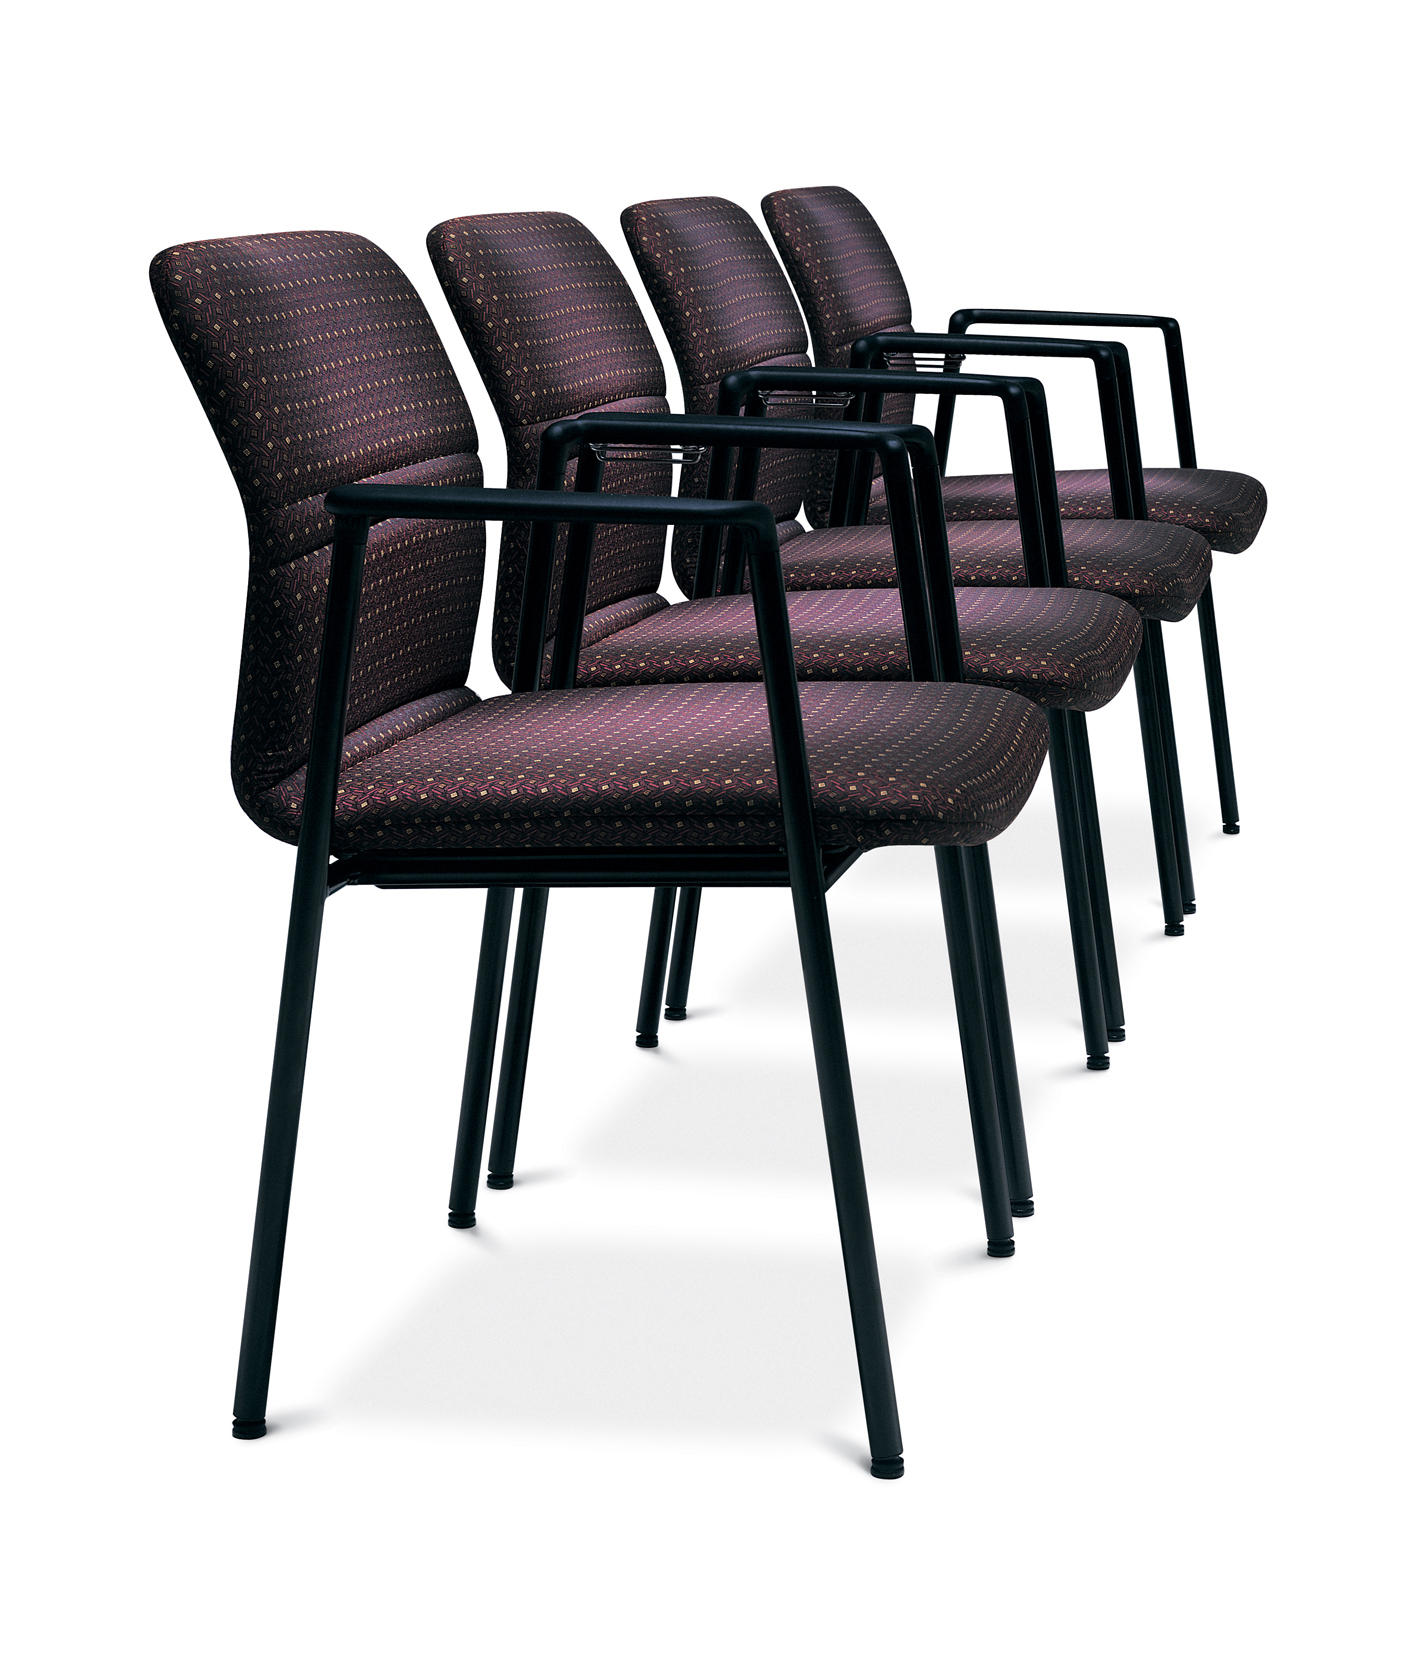 Bouncy Chair Bounce Chair Chairs From Stylex Architonic